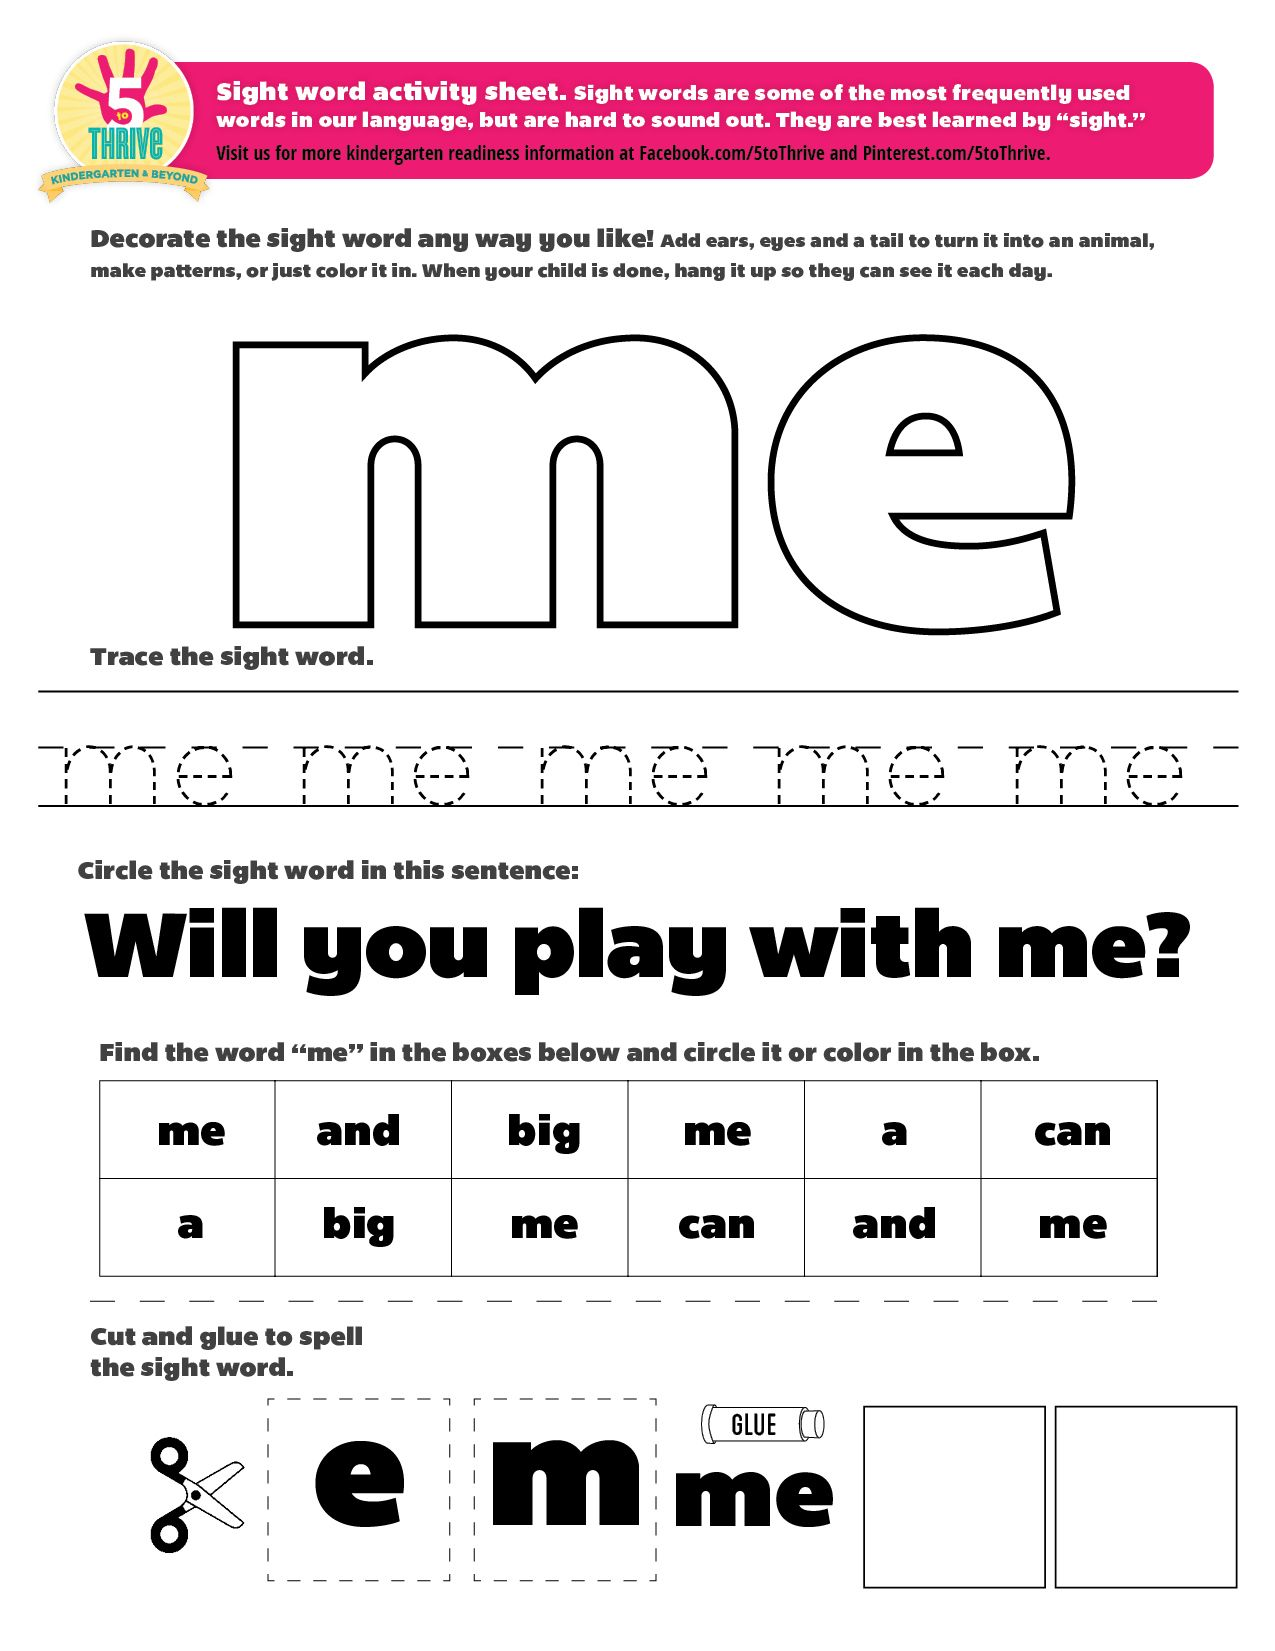 The Sight Word This Week Is Me Sight Words Are Some Of The Most Frequently Used Words In Our